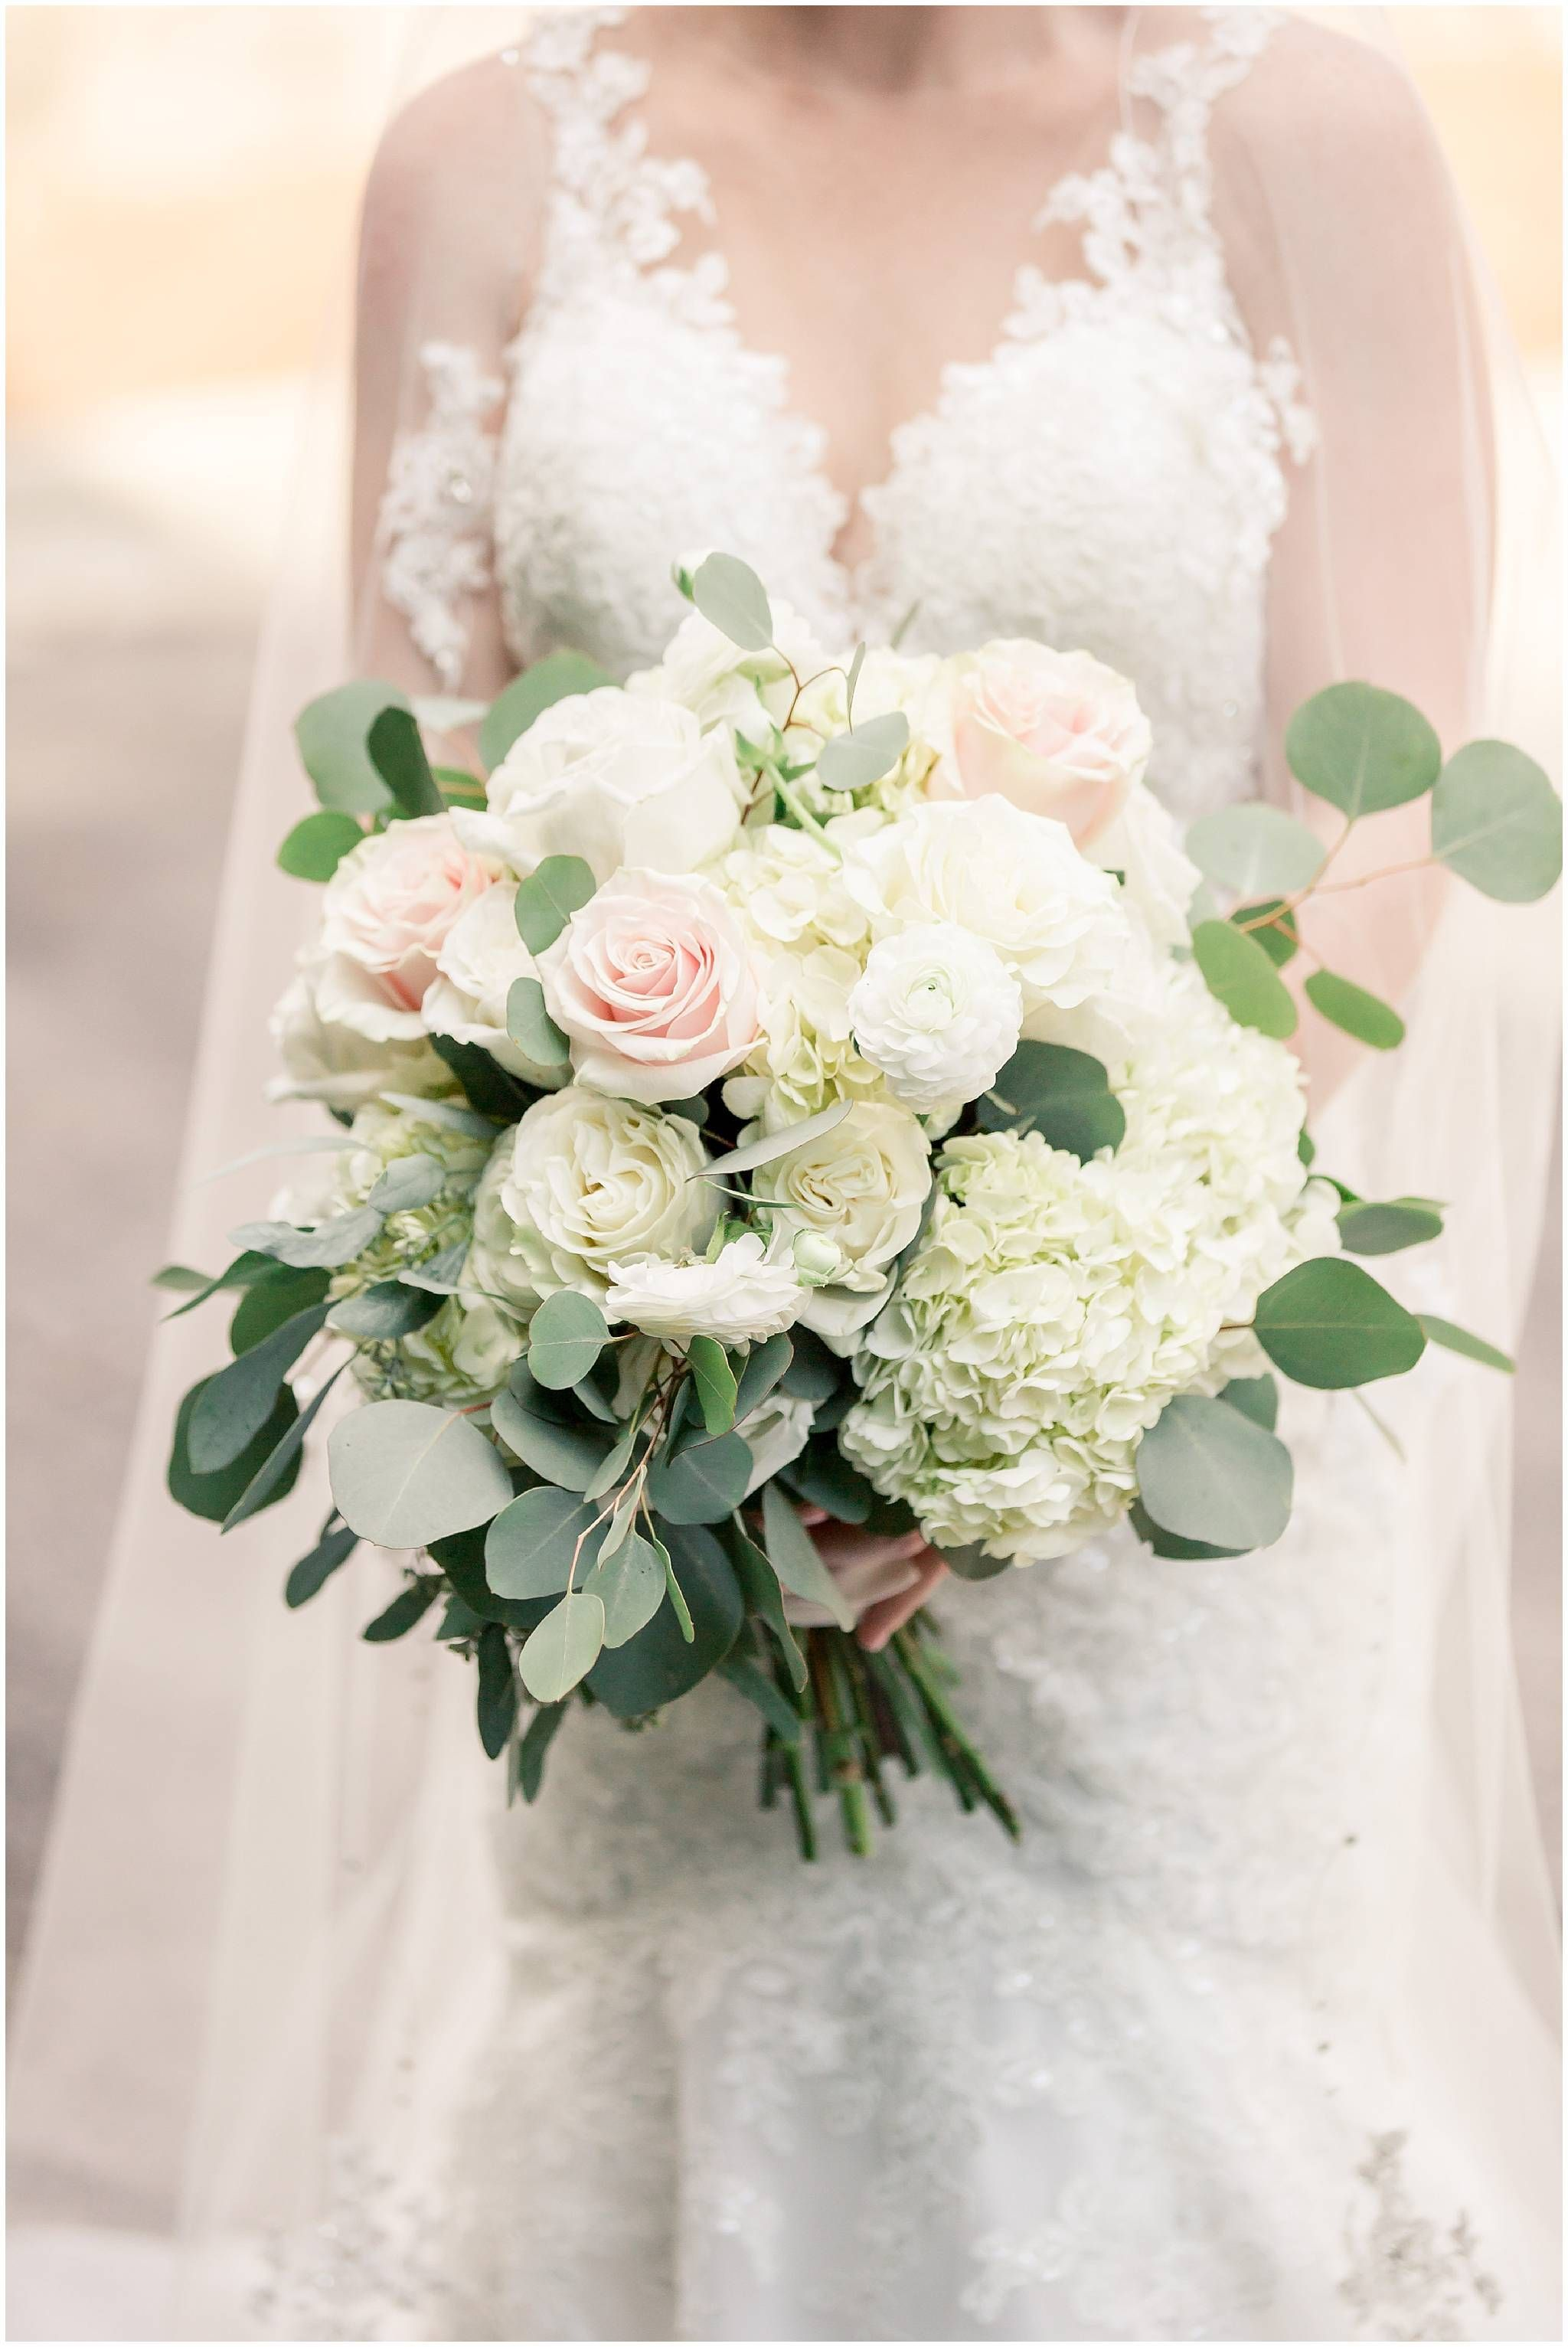 Romantic Bridal Bouquet Large Brides Bouquet Eucalyptus Roses